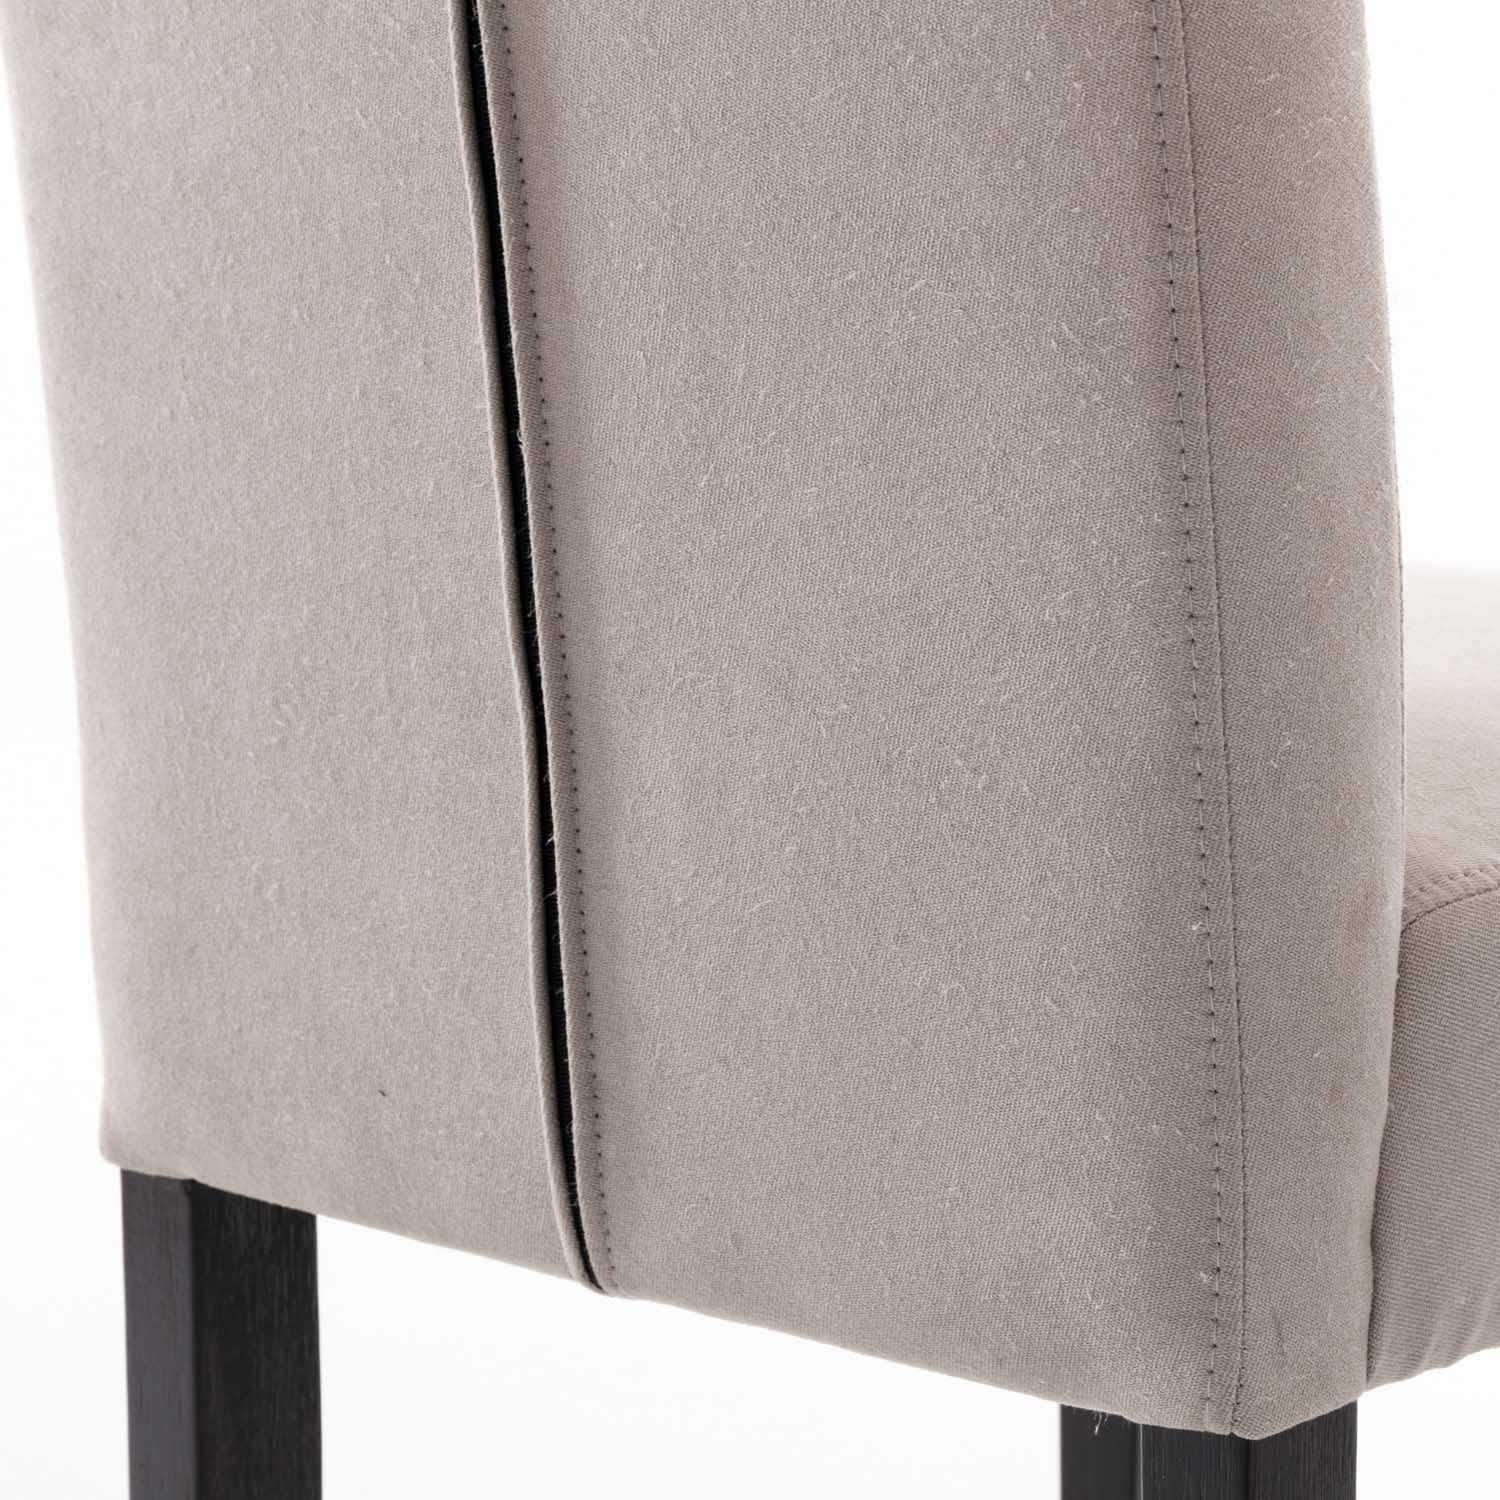 DininL Fur Dining Chair Kitchen Chairs Set of 2 Modern Dining Room Side Chairs Fabric Cushion Seat Back (Light Gery) - Chairs